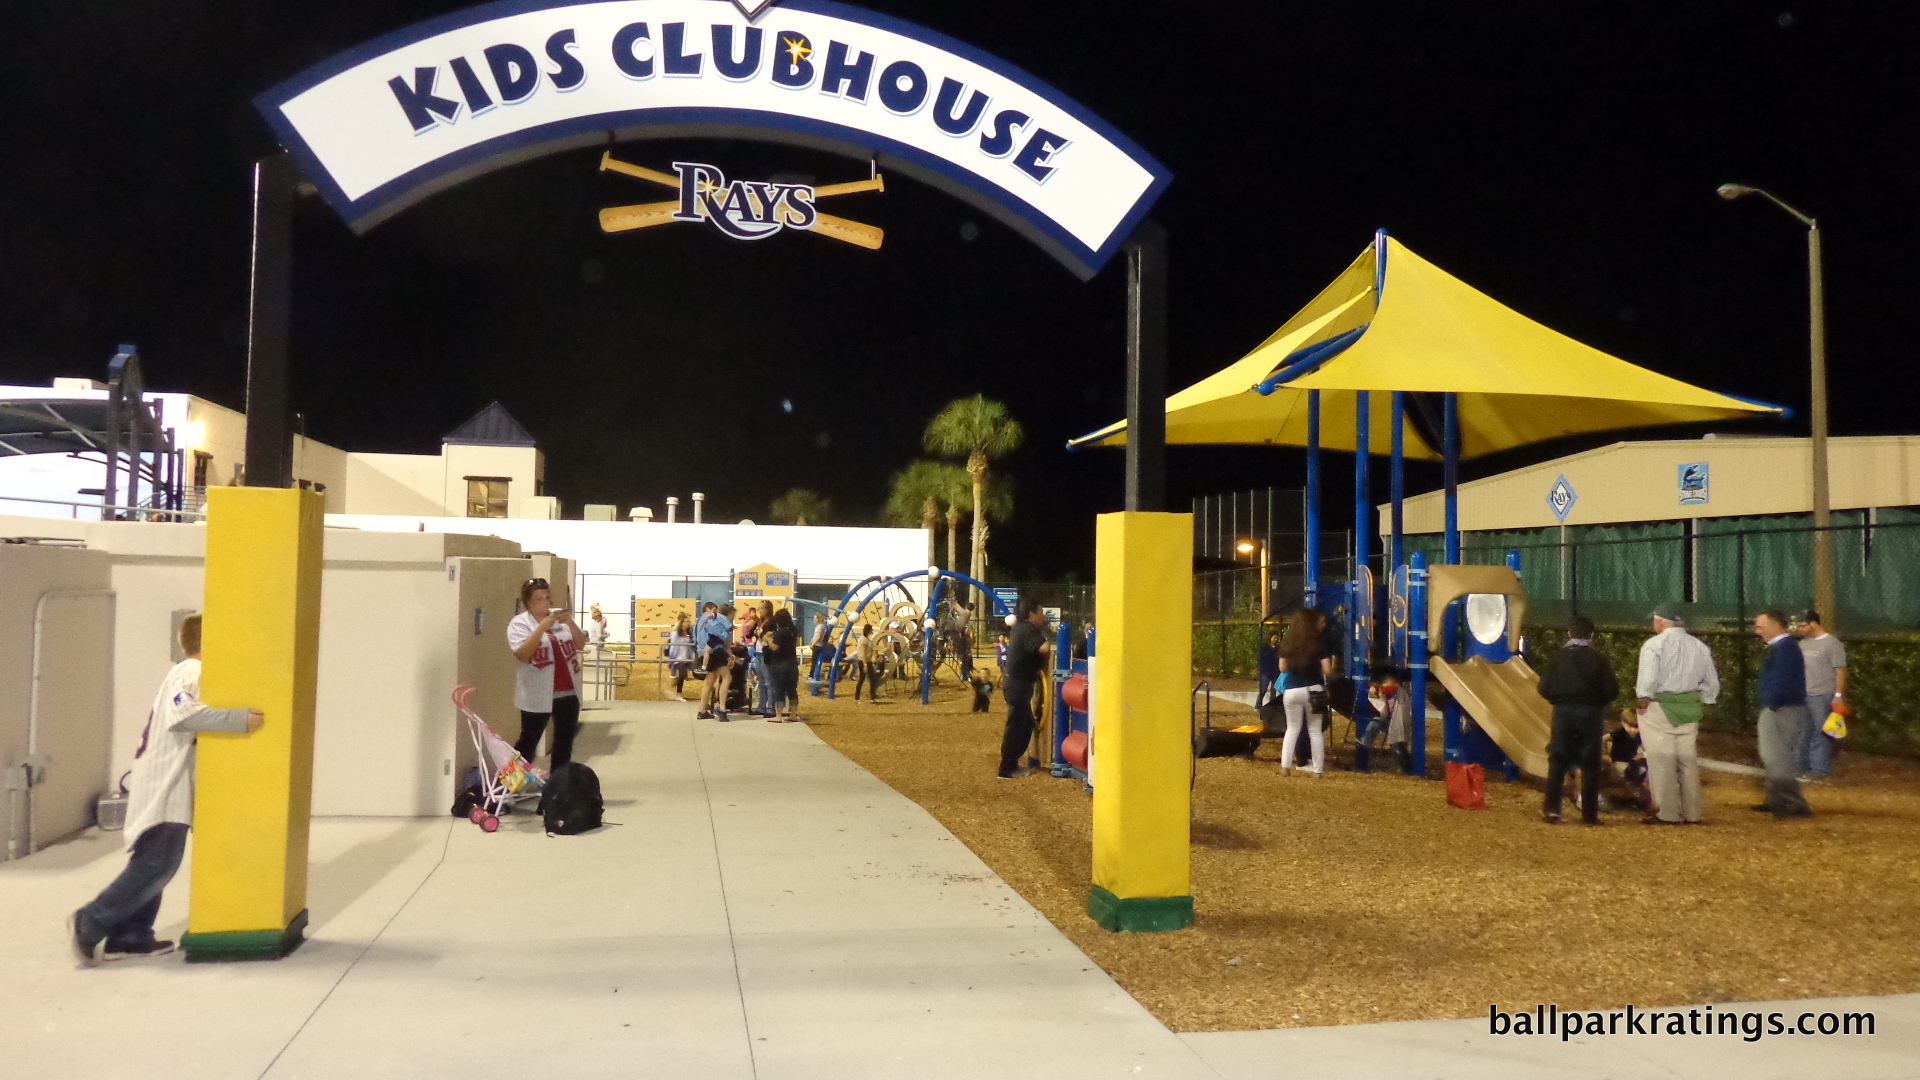 Charlotte Sports Park Kids Clubhouse